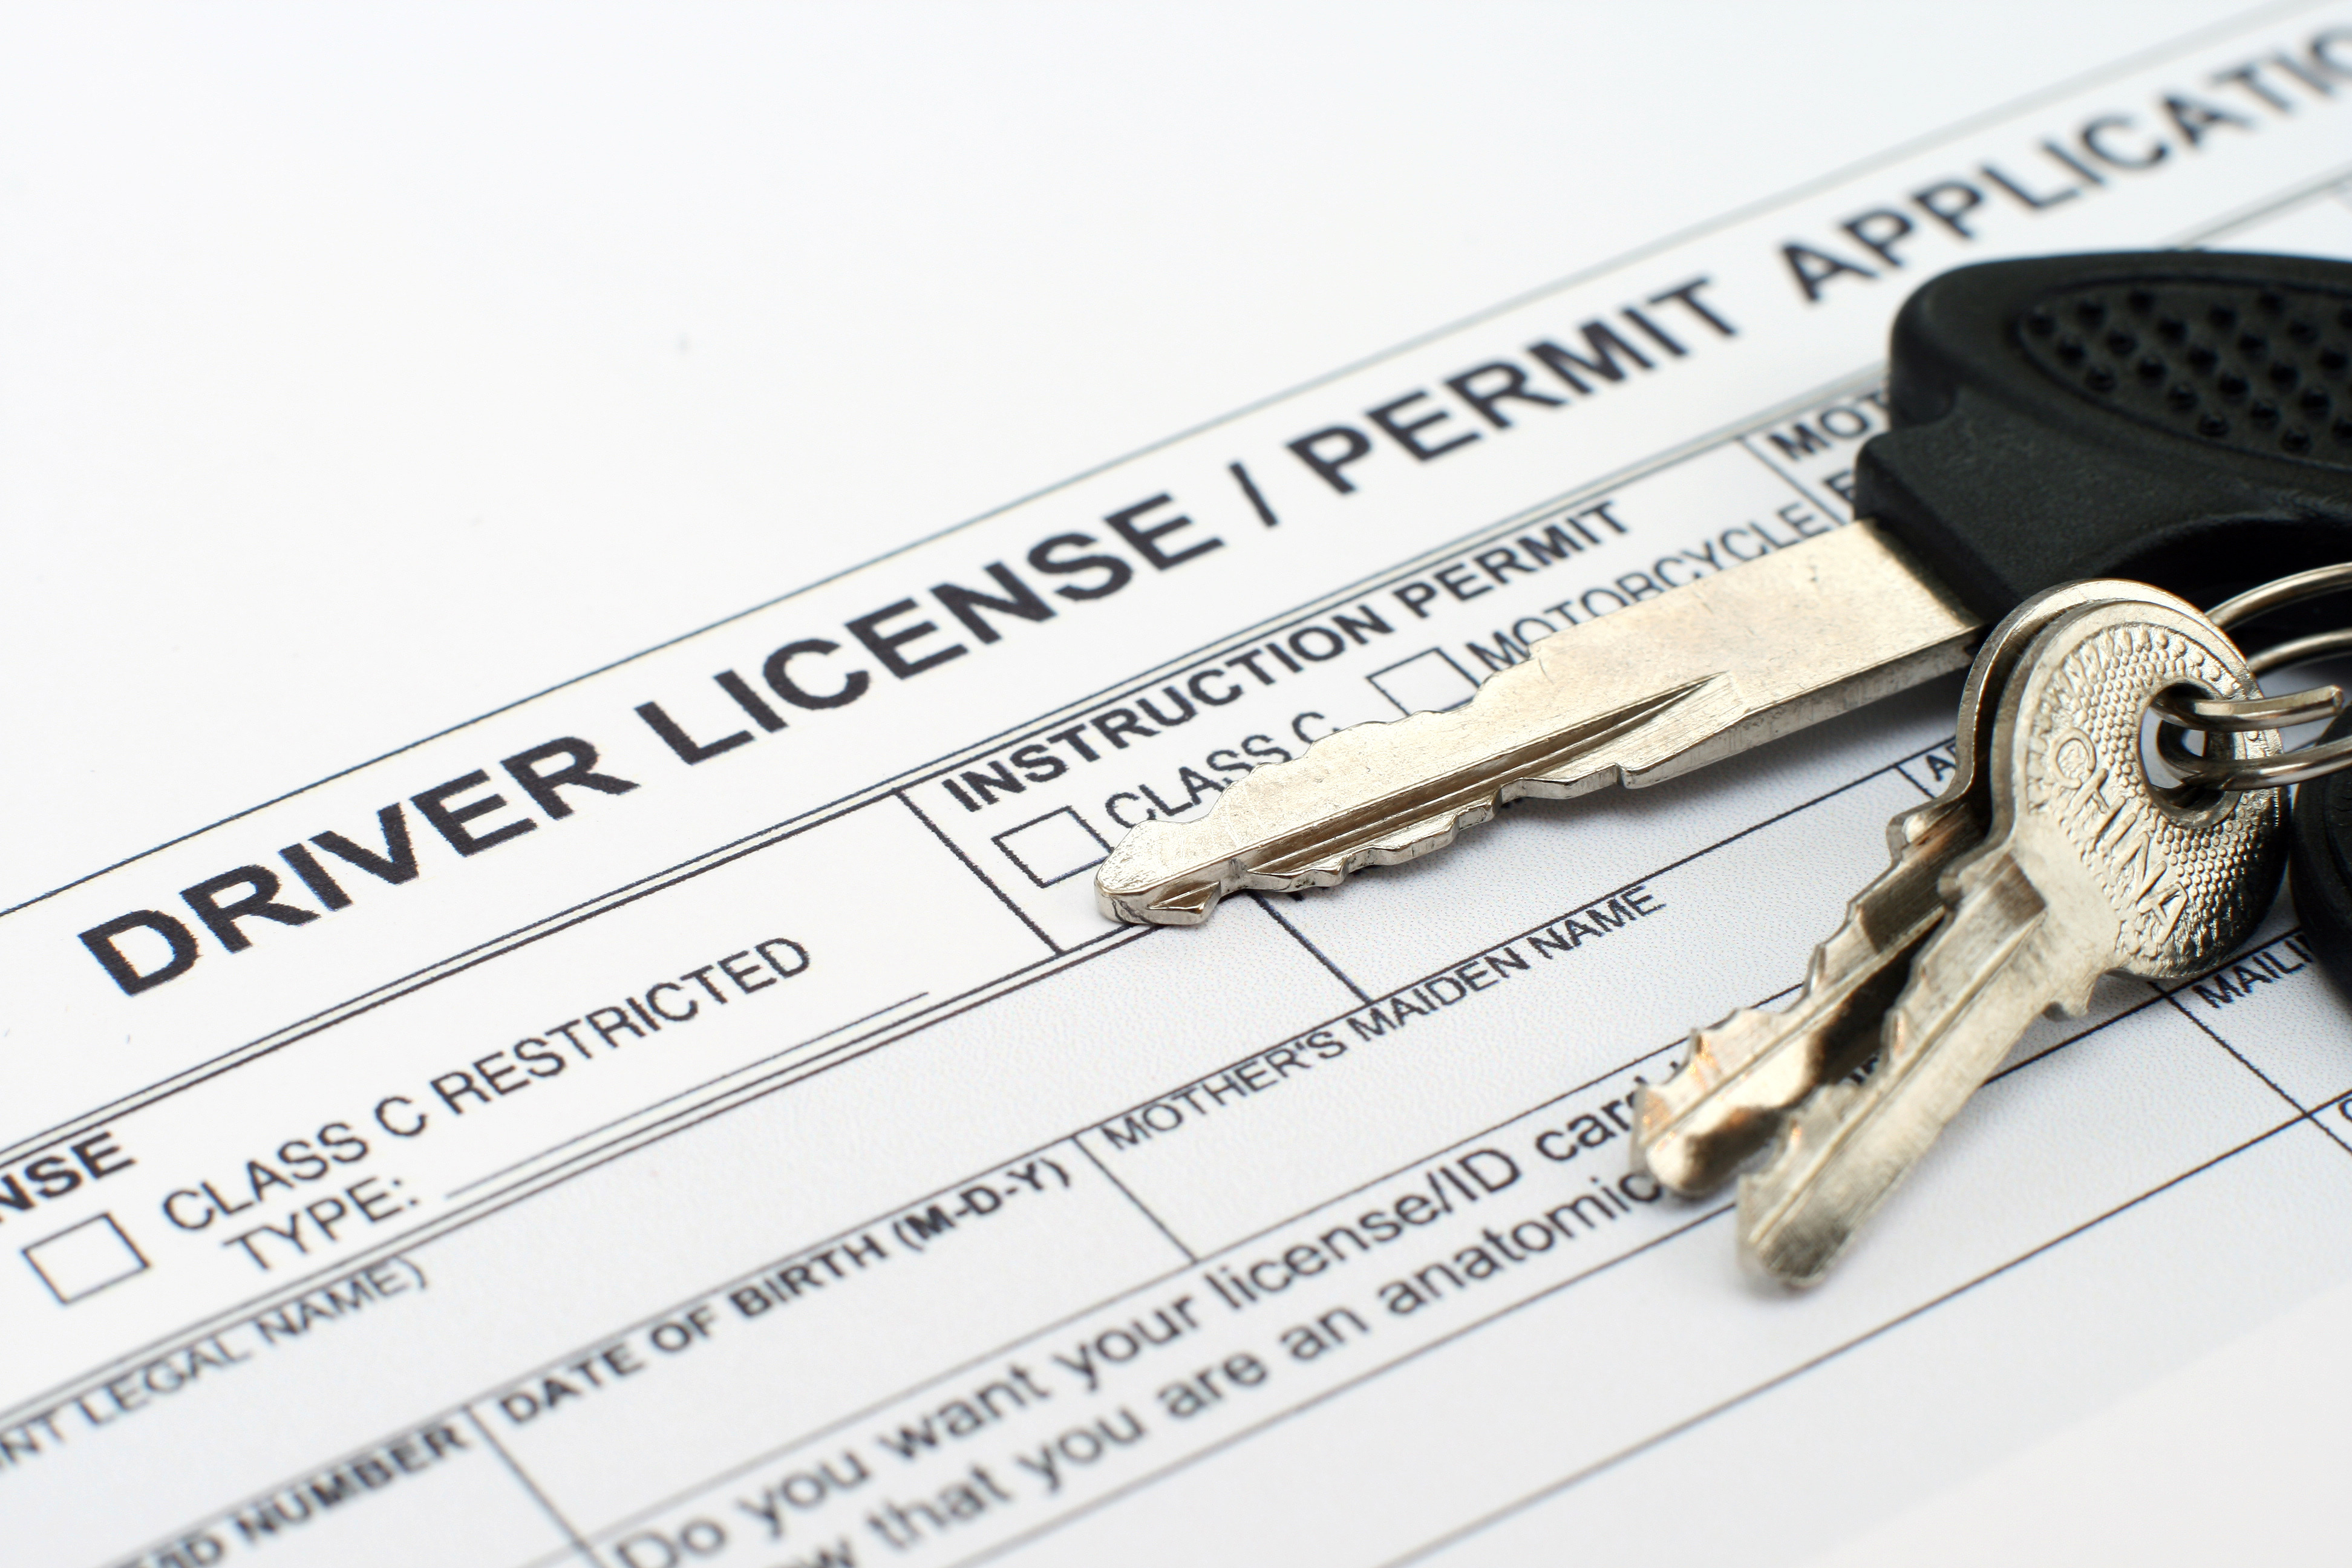 How to get your license back online